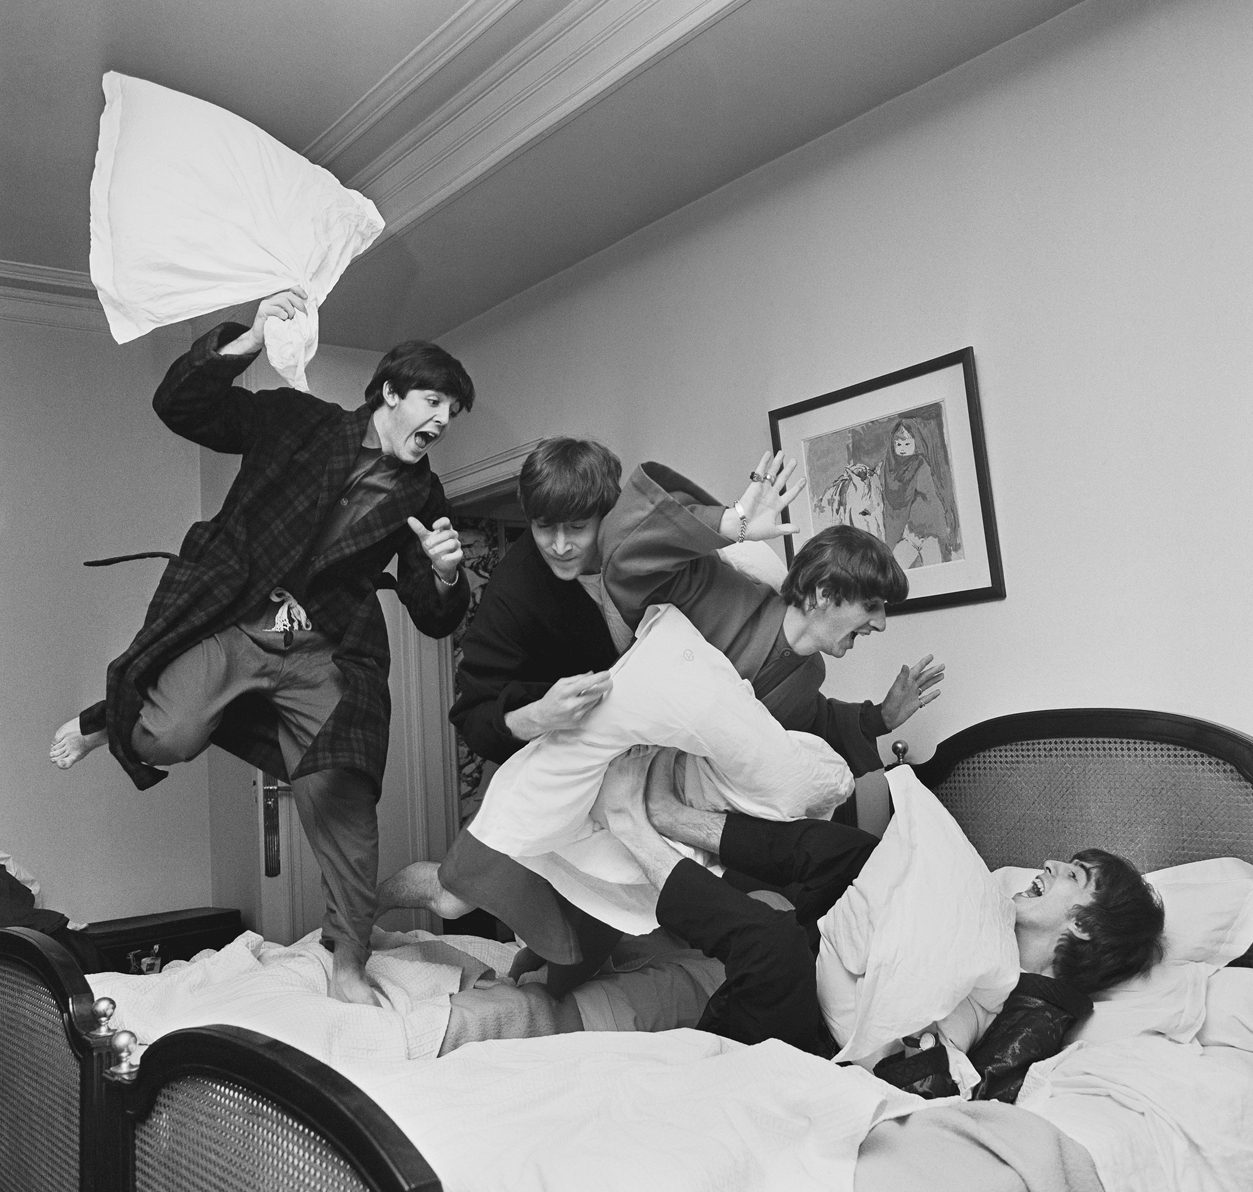 The Beatles (Pillow Fight) - Paris 1964